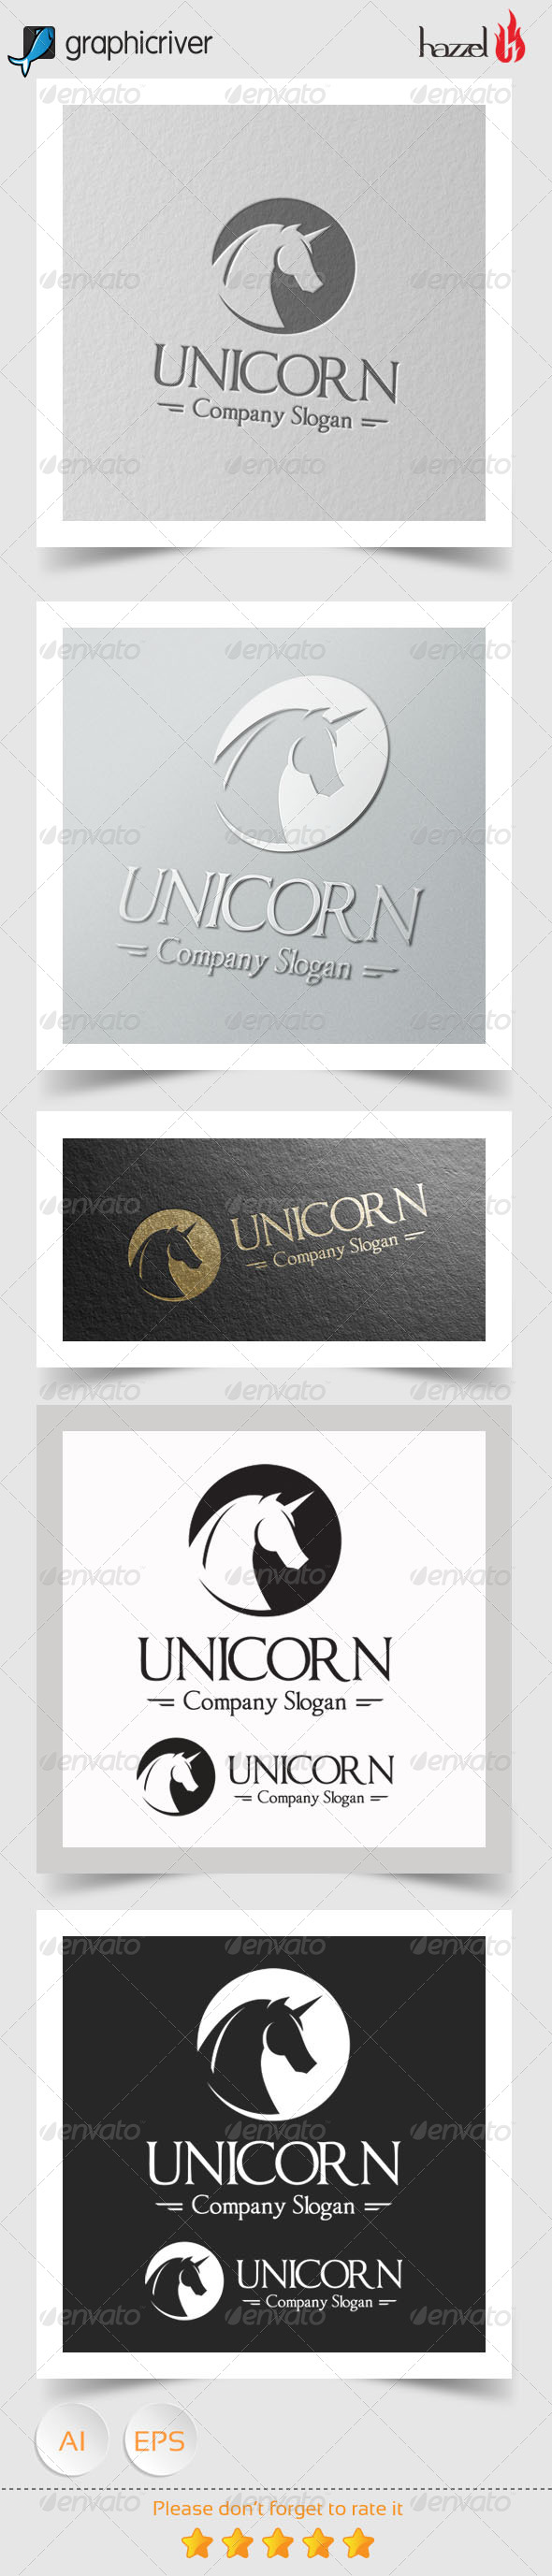 GraphicRiver Unicorn Logo 8101521